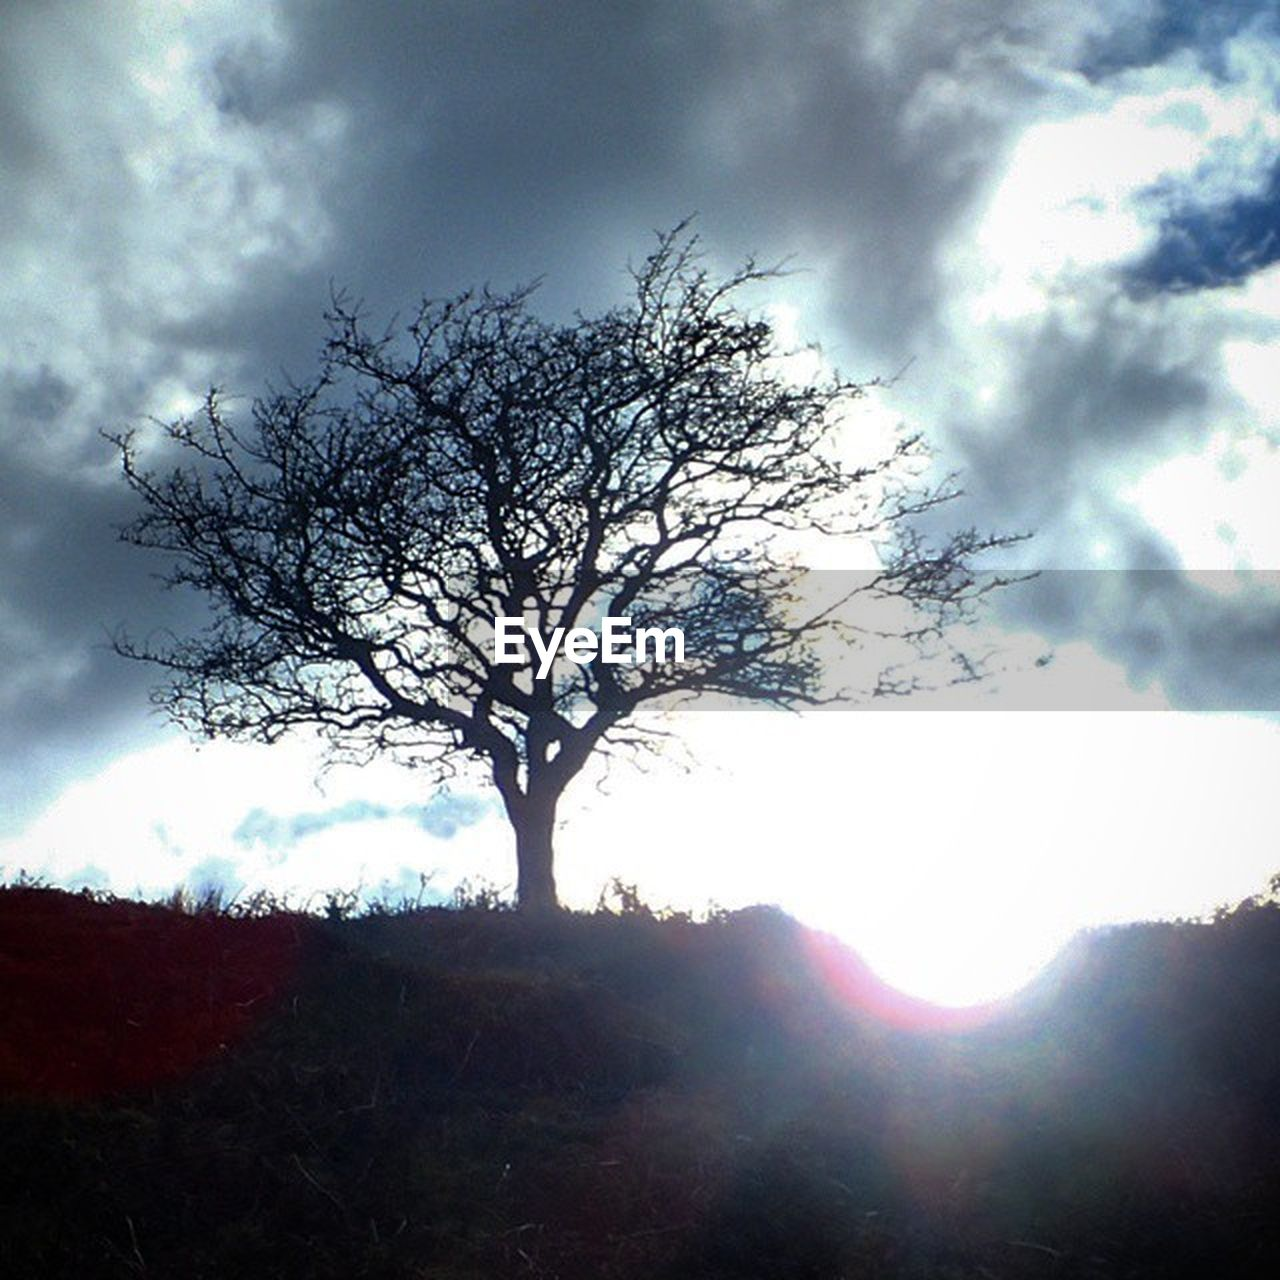 tree, branch, tranquility, majestic, bare tree, lone, beauty in nature, sky, nature, tranquil scene, landscape, isolated, day, outdoors, scenics, no people, tree trunk